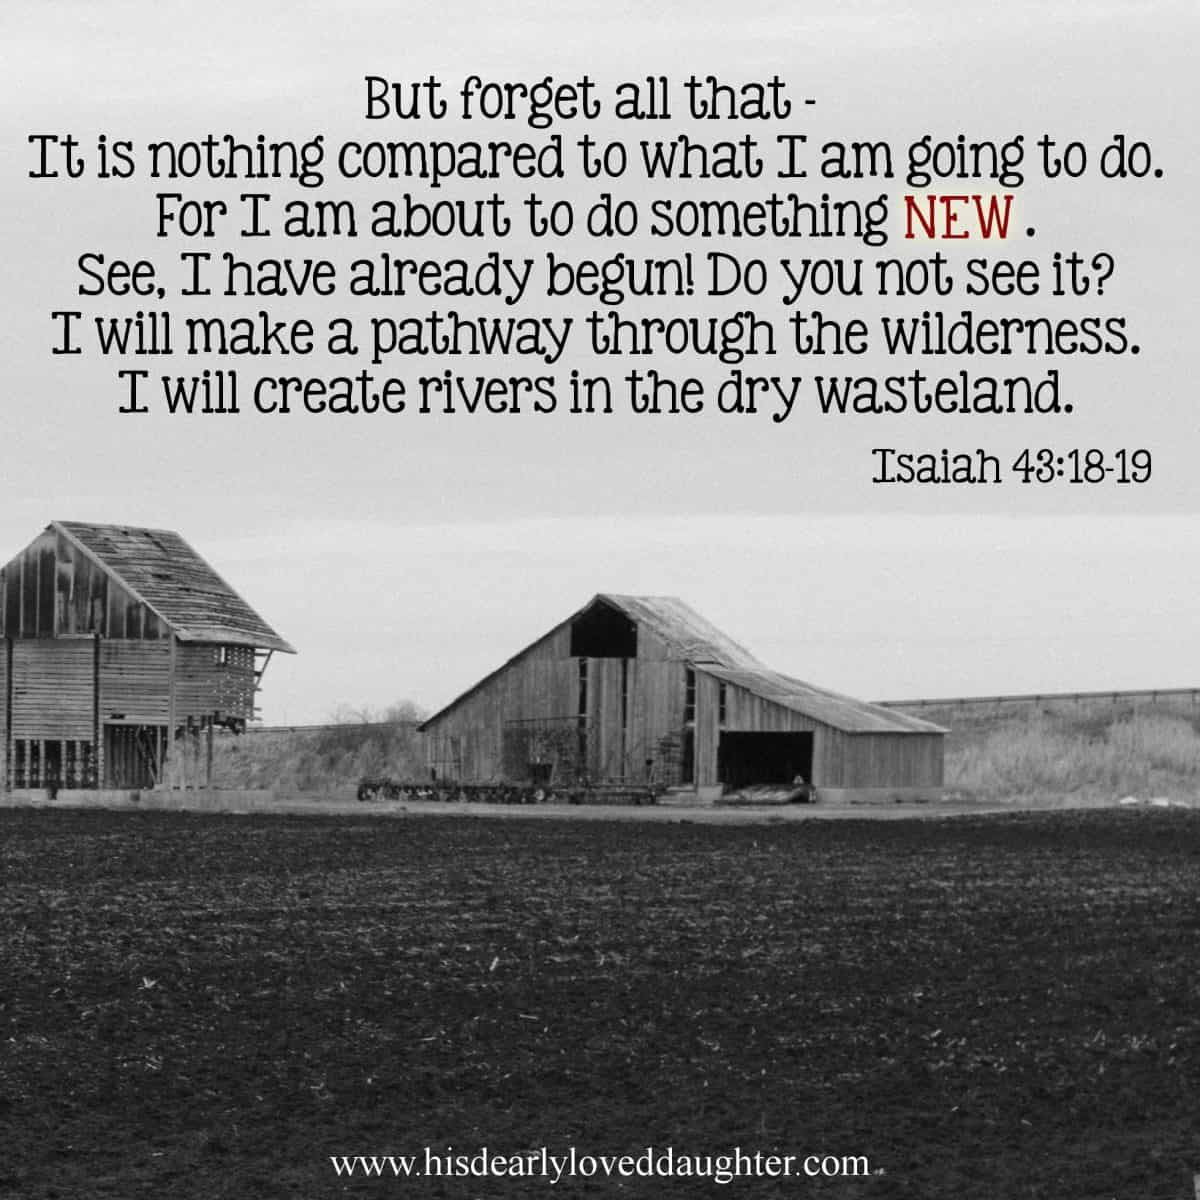 But forget all that - It is nothing compared to what I am going to do. For I am about to do something new. See, I have already begun! Do you not see it? I will make a pathway through the wilderness. I will create rivers in the dry wasteland. Isaiah 43:18-19